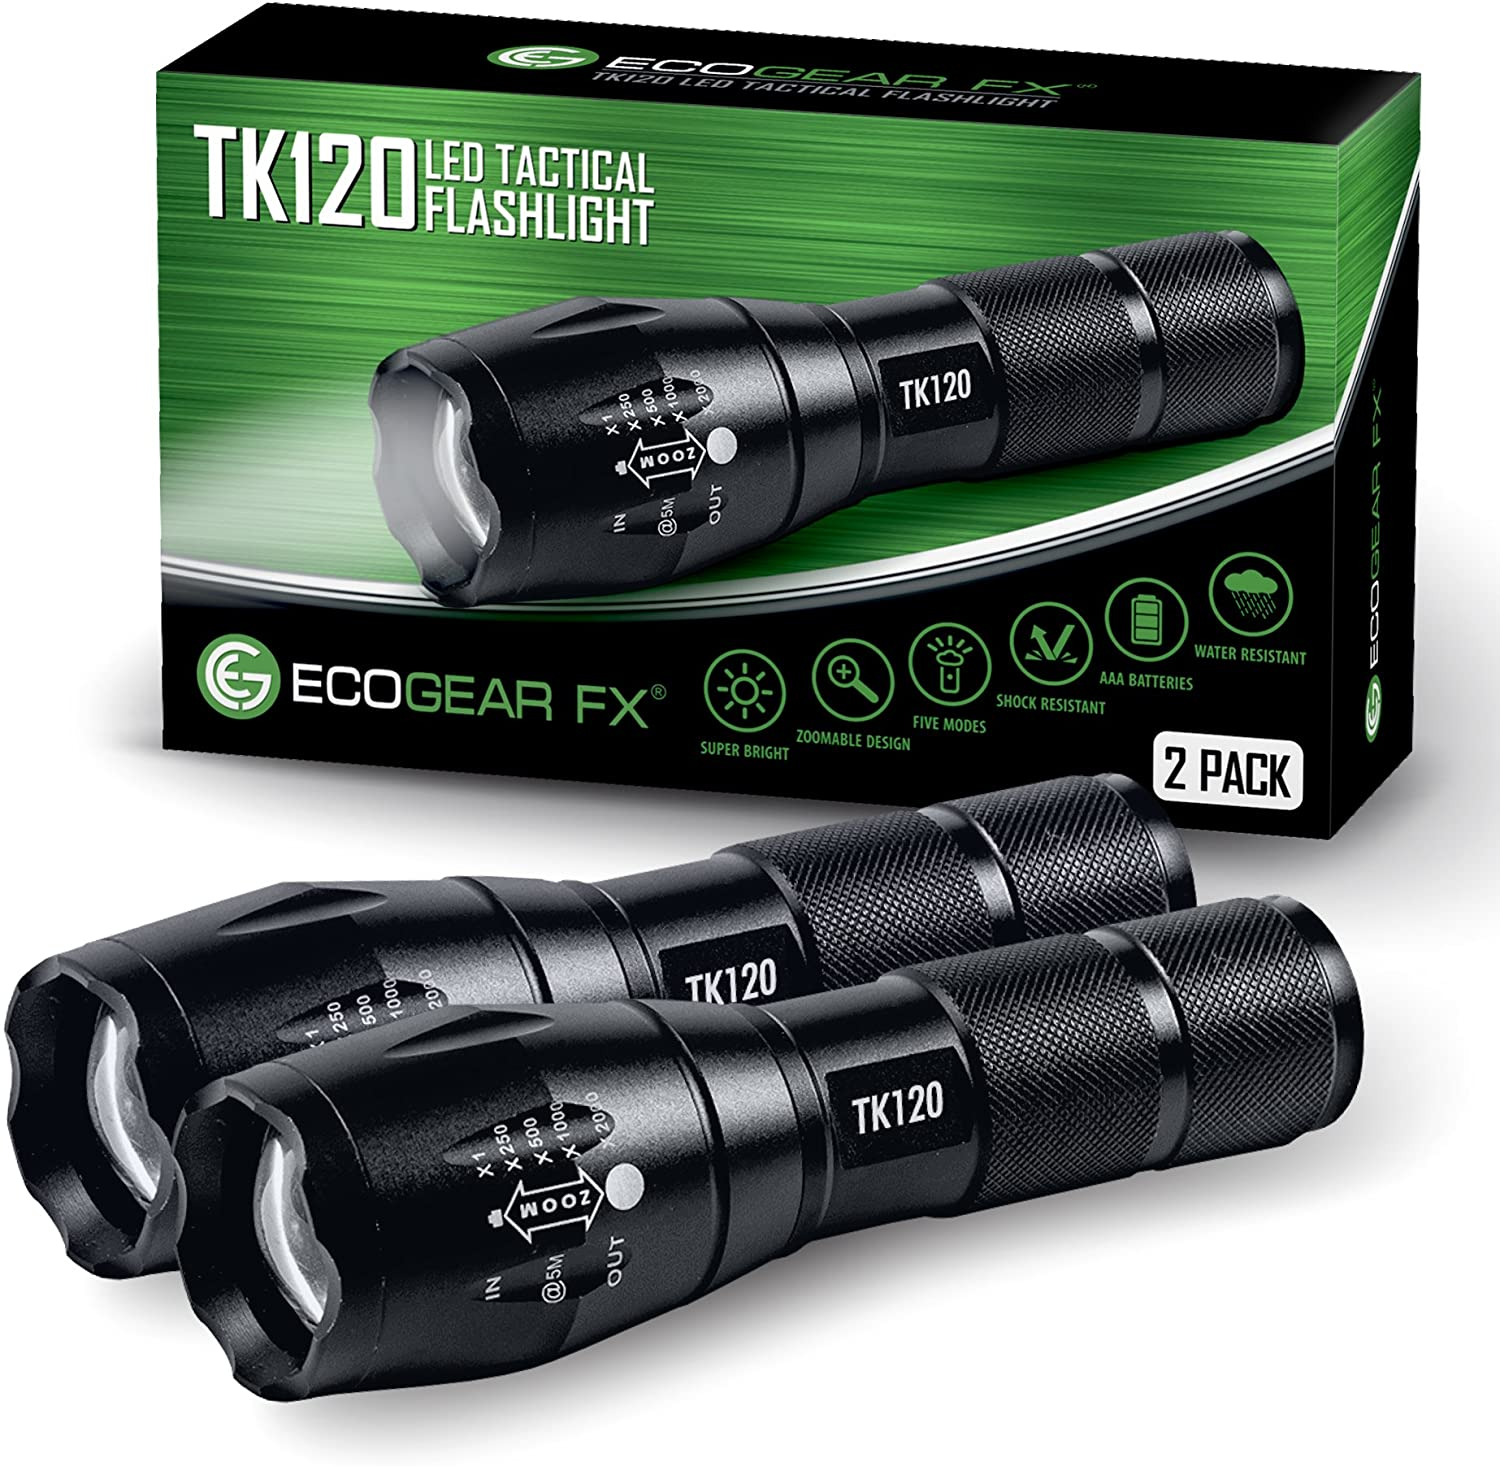 EcoGear FX LED Tactical Flashlight - 5 Light Modes, Water Resistant, Zoomable - Best Camping, Outdoor, Emergency, Everyday Flashlights